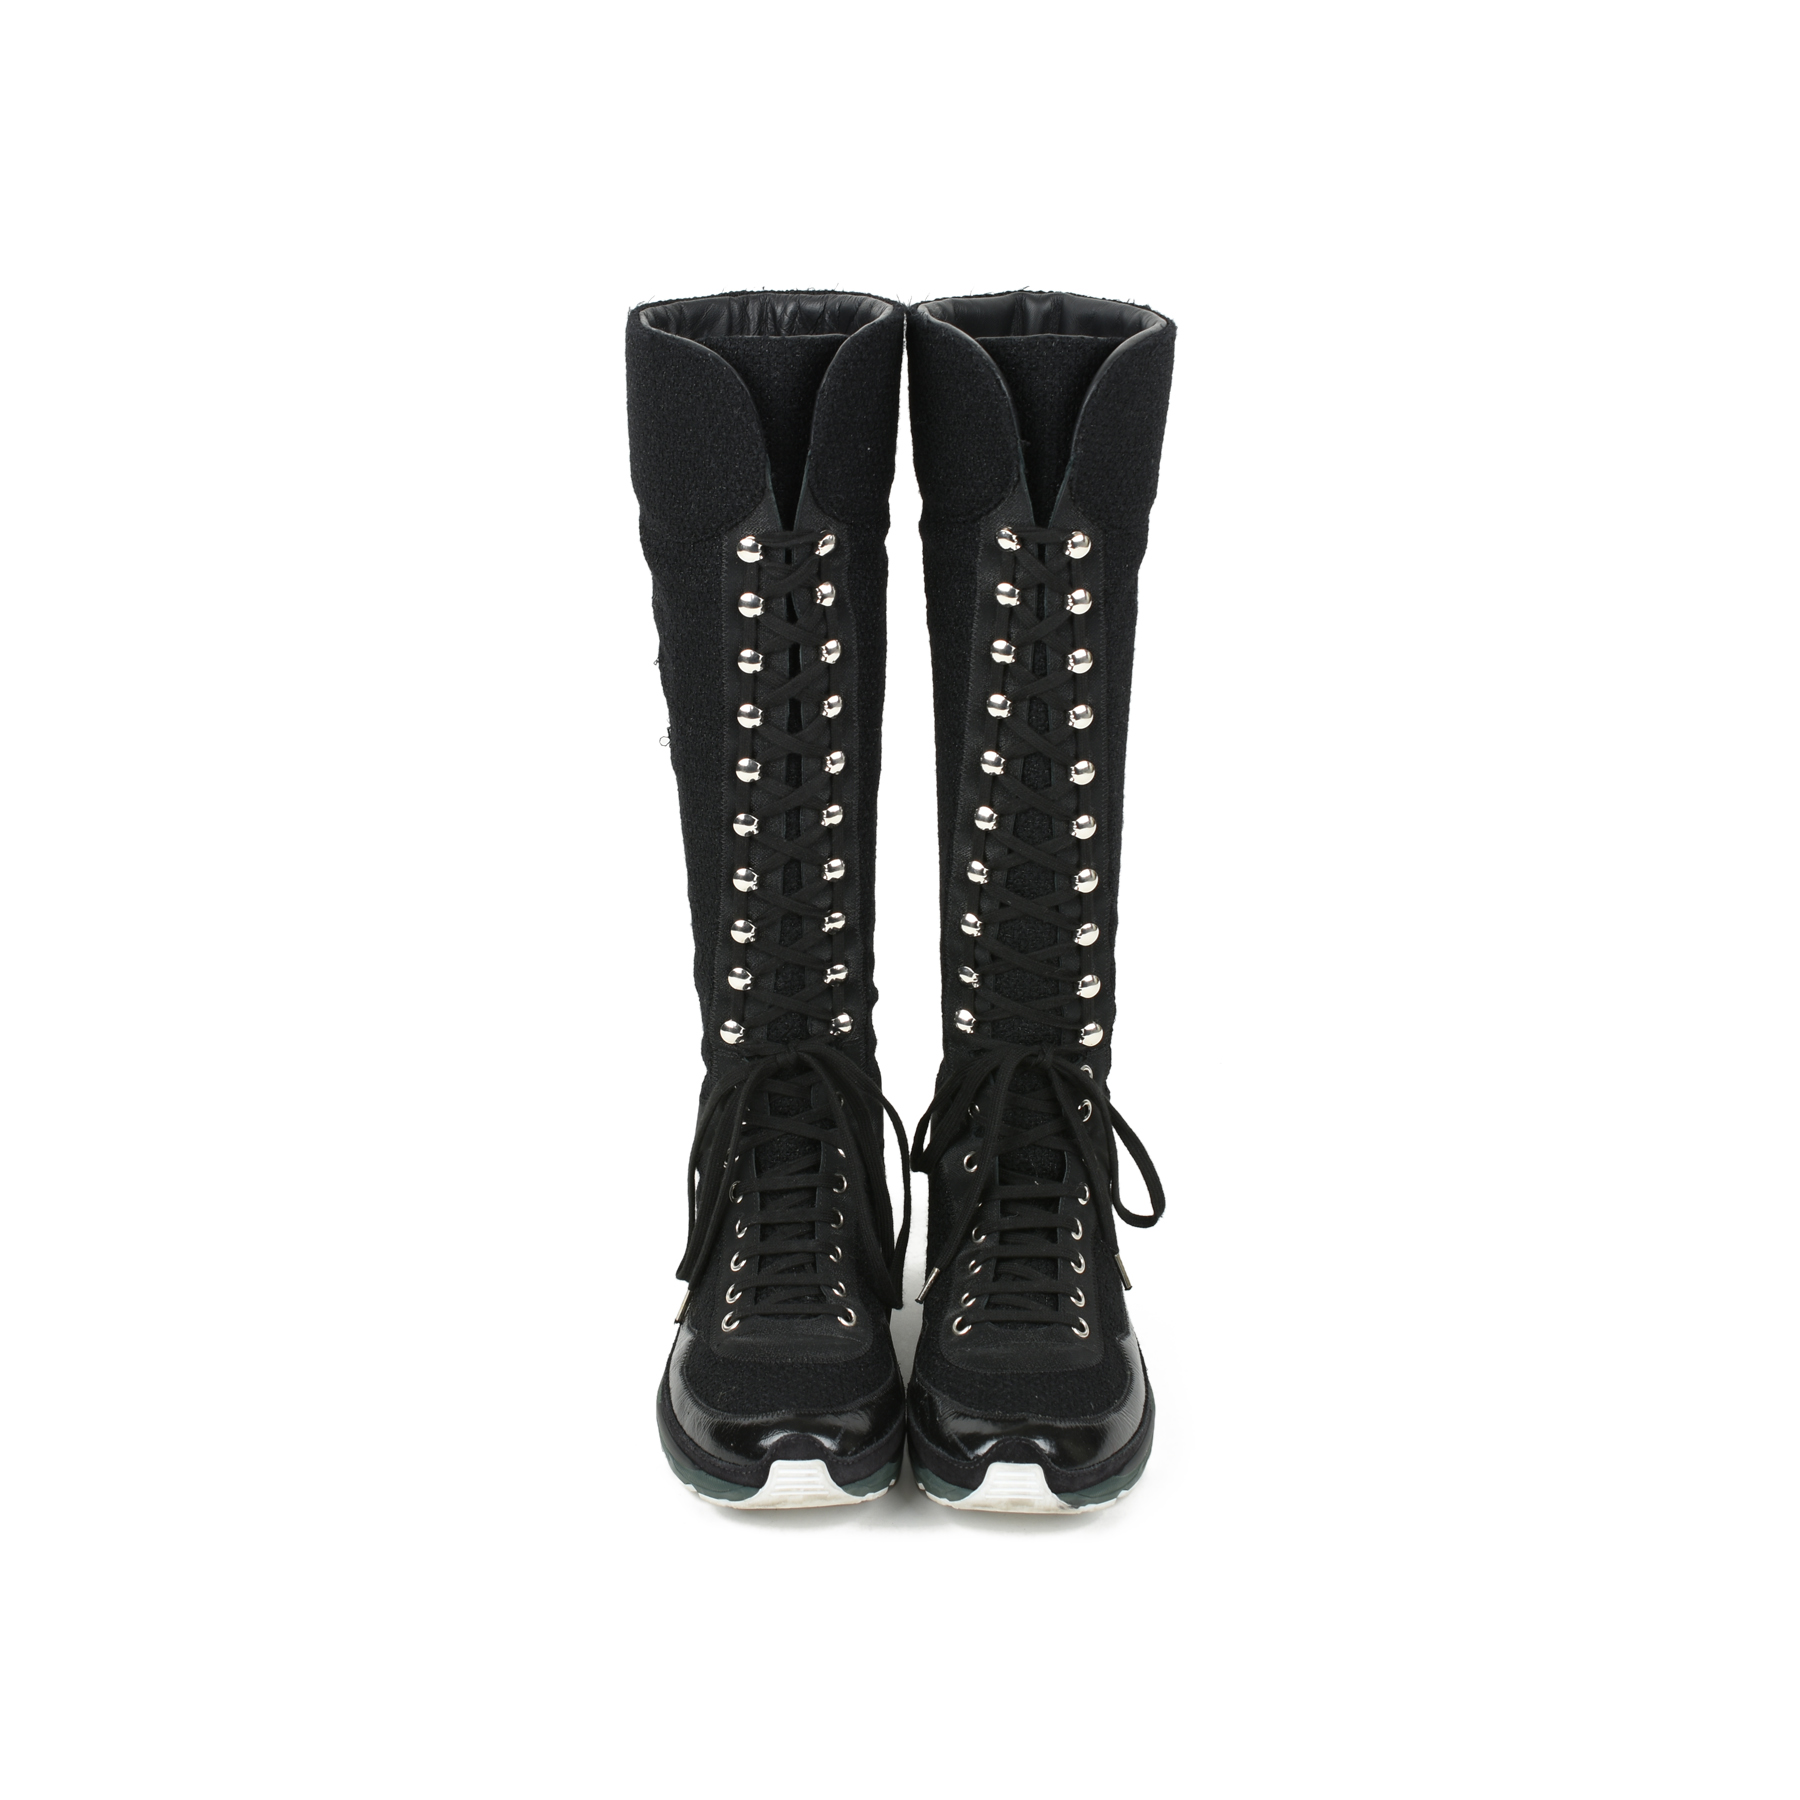 09eb4e9ef Authentic Second Hand Chanel Tweed Sneaker Boots (PSS-051-00341) - THE  FIFTH COLLECTION